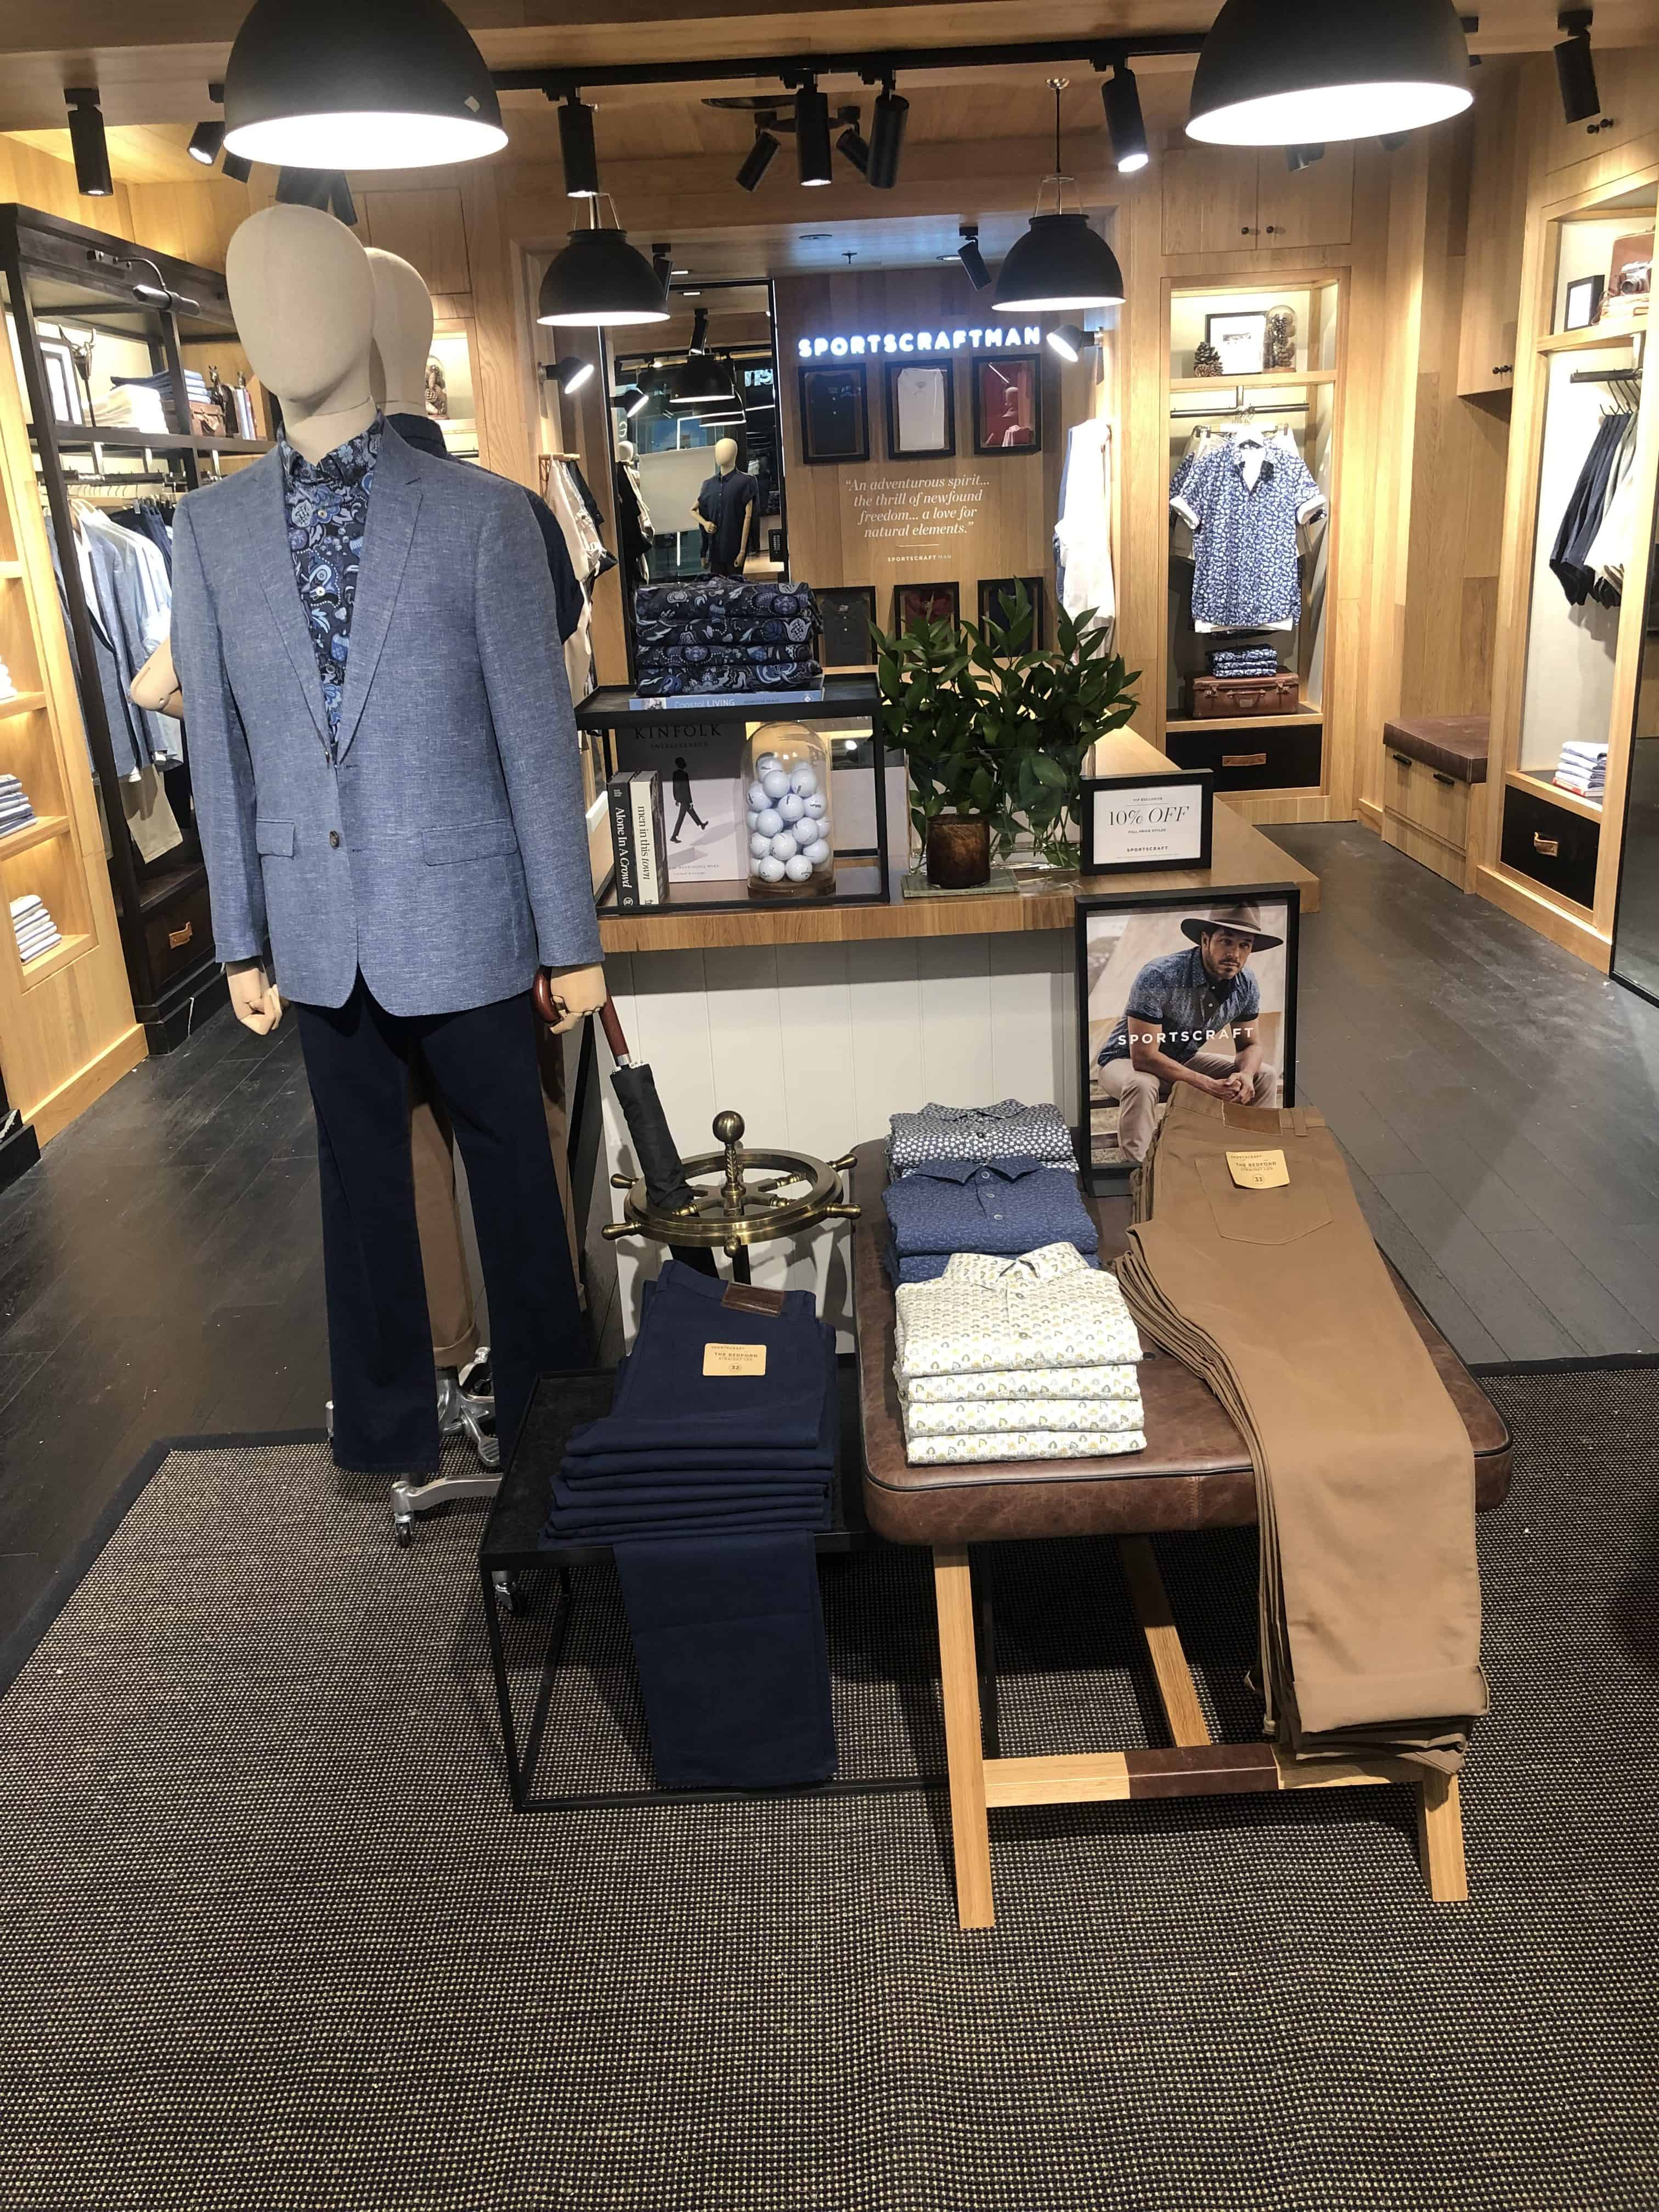 Interior of Sportscraft Mens Merivale Store